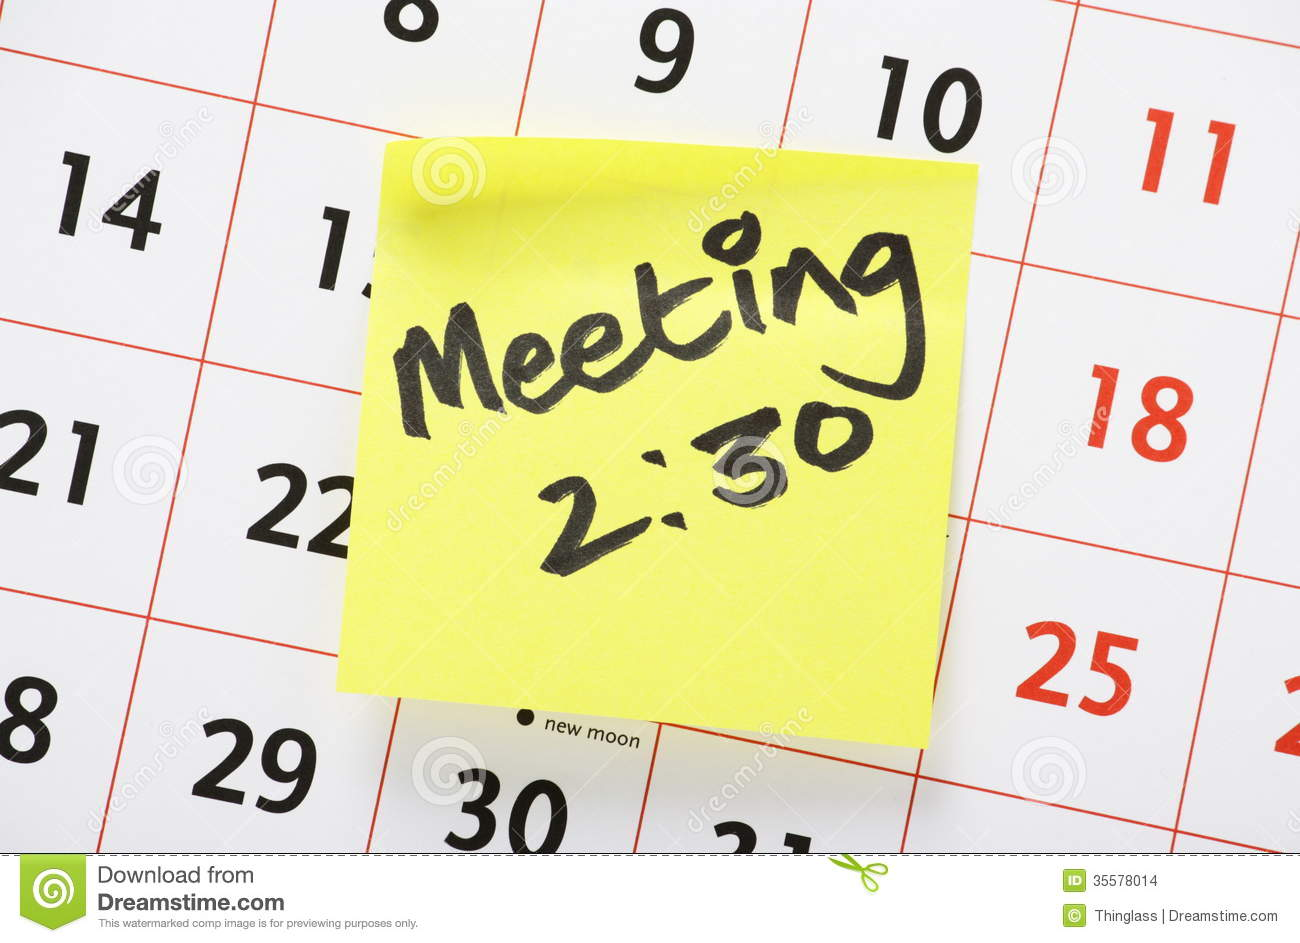 Calendar Wallpaper With Reminder : Meeting reminder stock photo image of important calendar